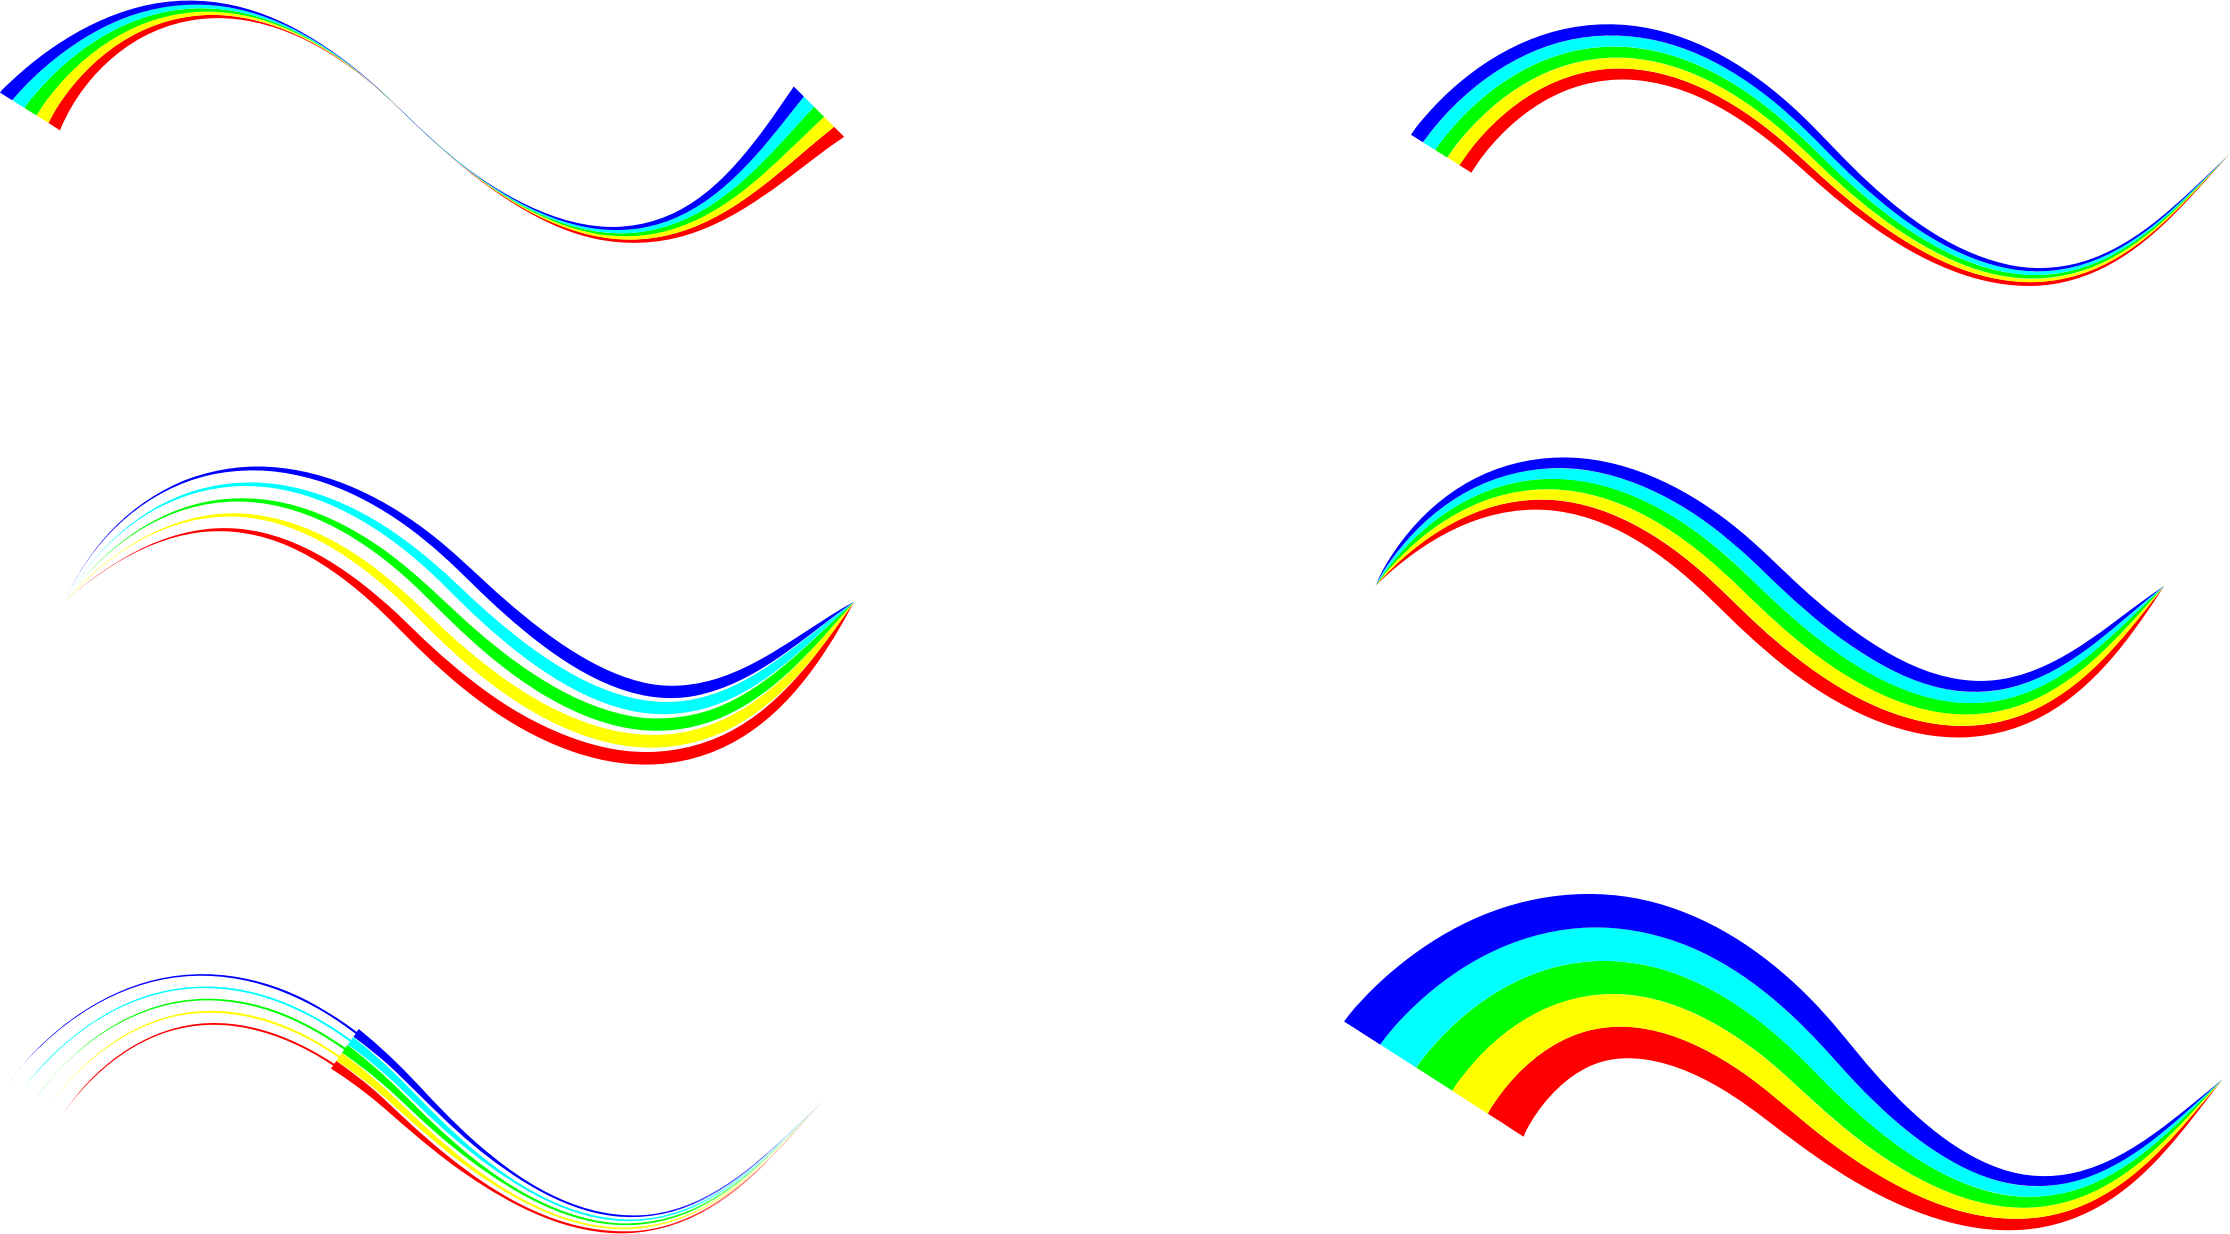 Colorful waves png. Abstract icons free and